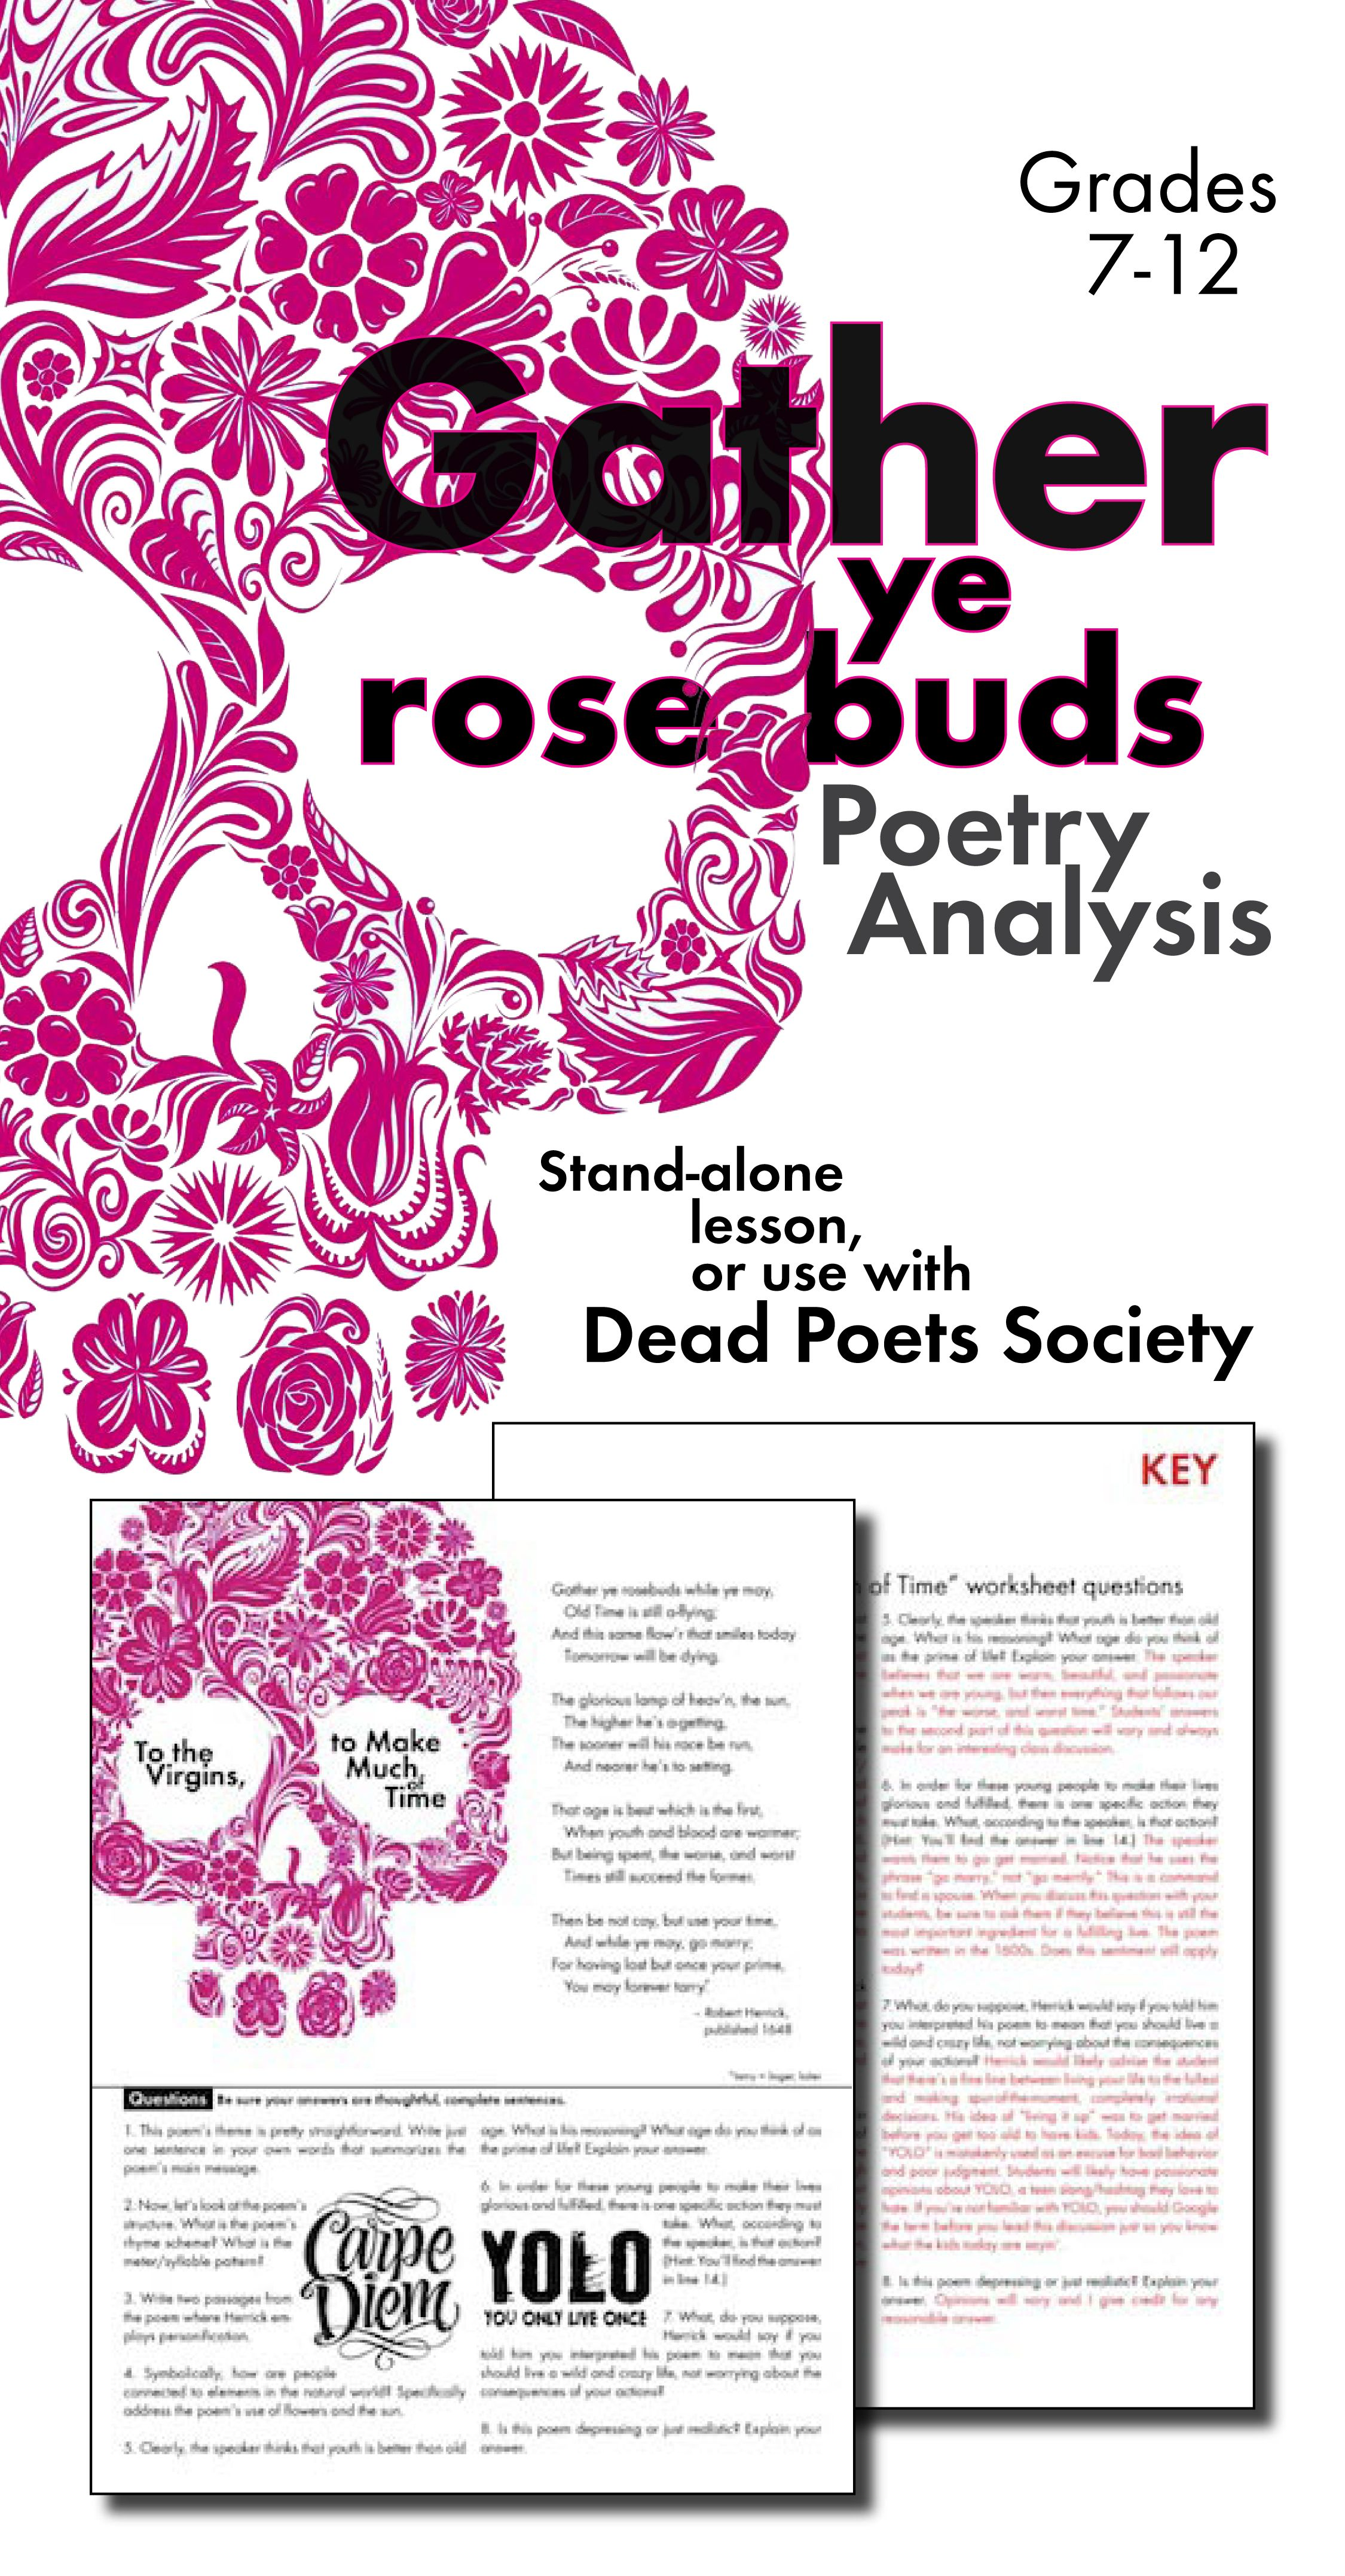 Gather Ye Rosebuds Poetry Analysis Worksheet for Robert